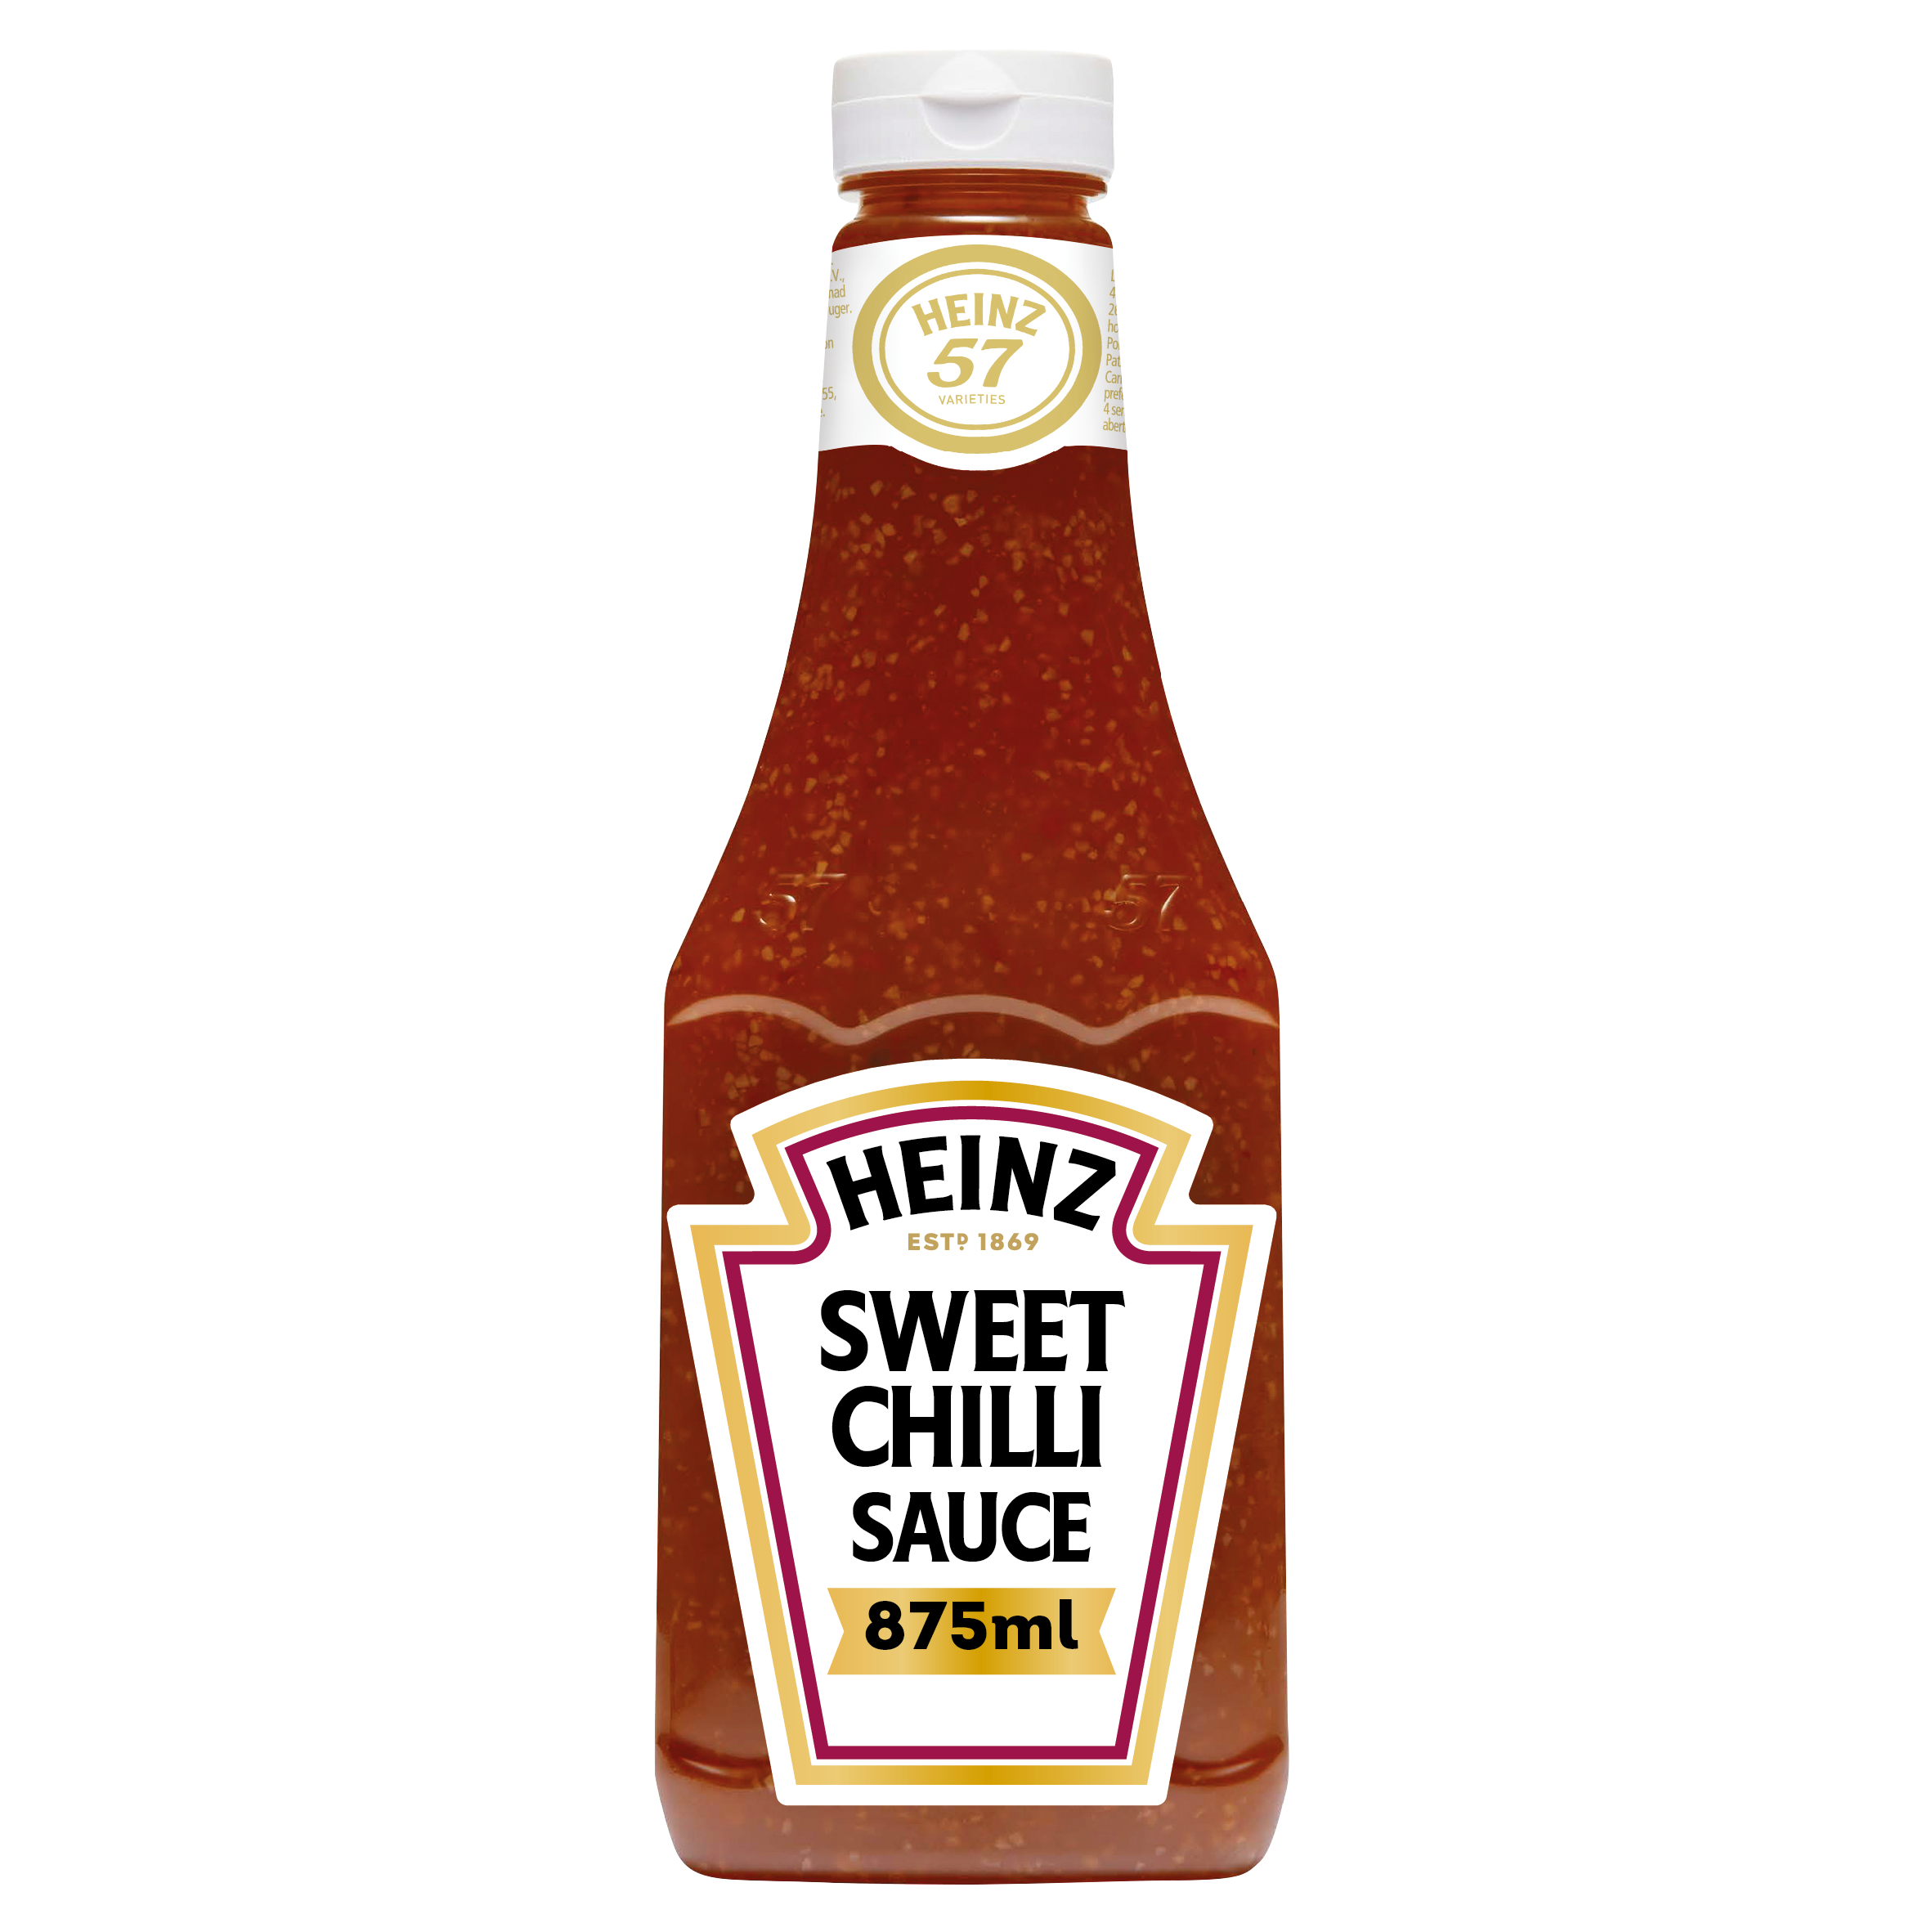 Heinz Sweet Chilli 875ml